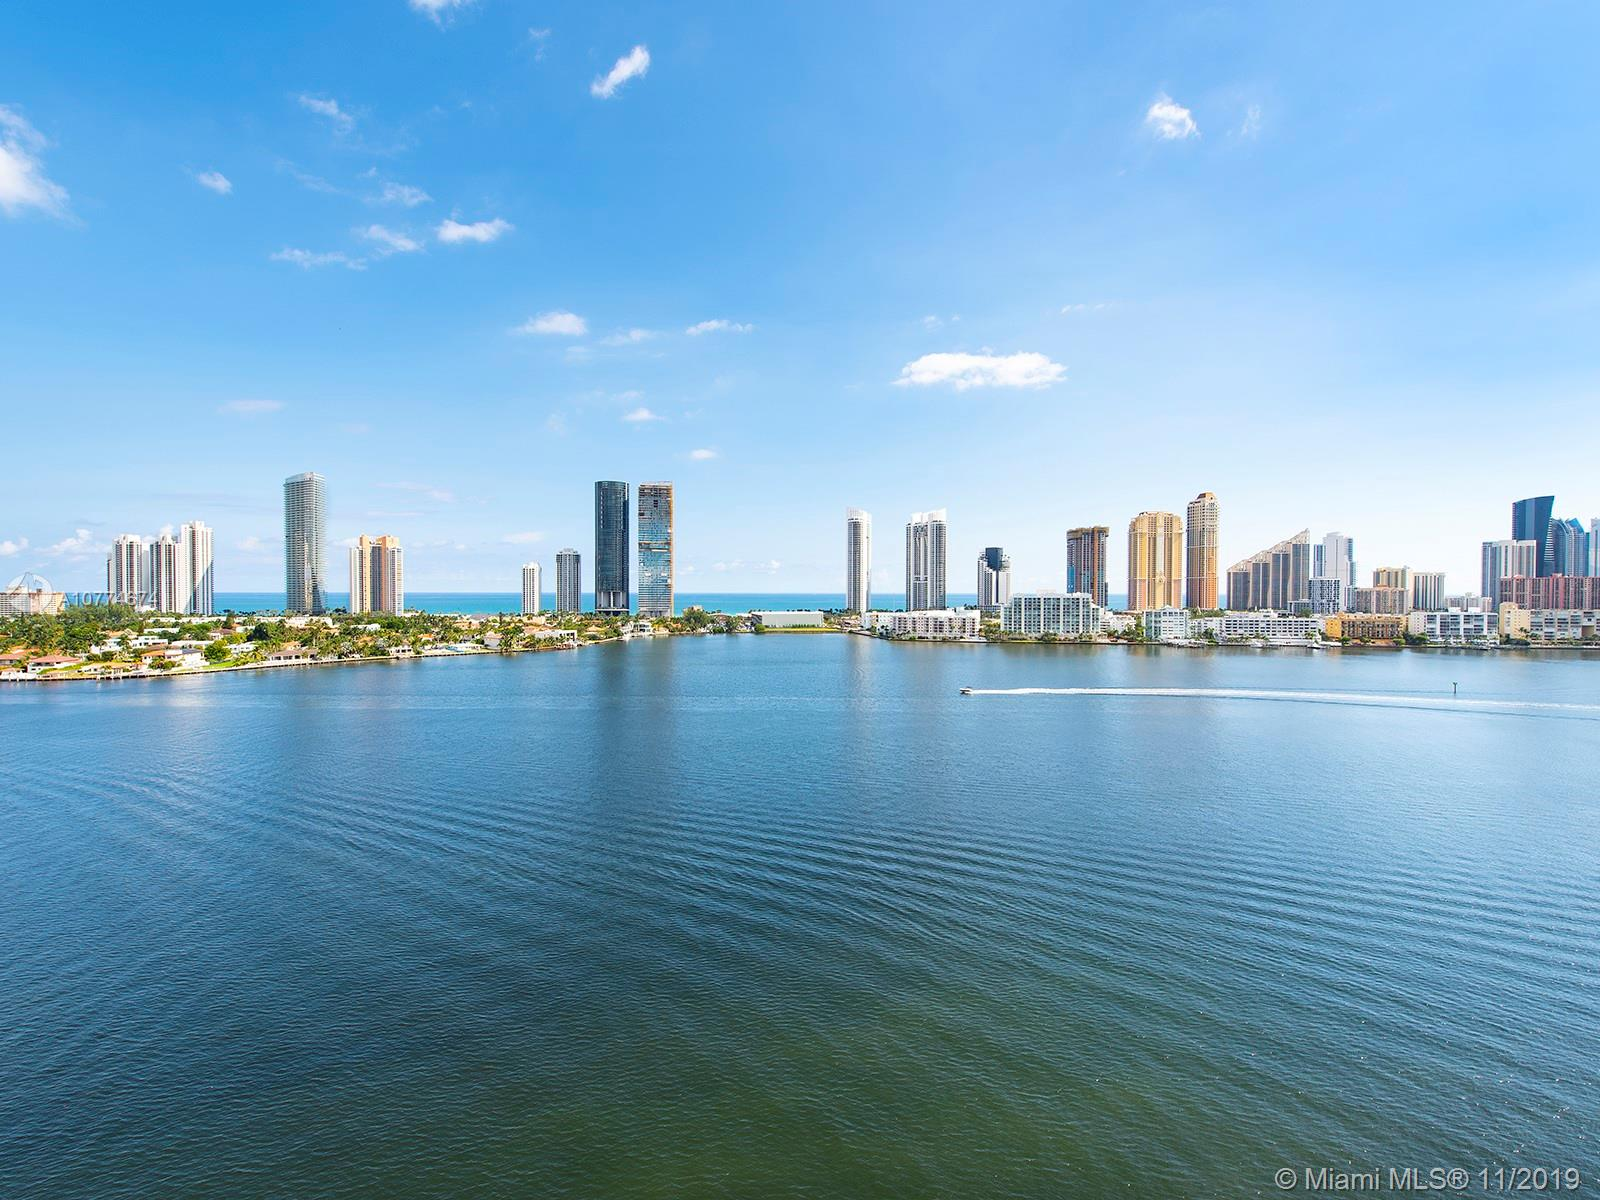 Prive Island. Luxury living in Aventura area. One of a kind 3bed/4.1bath w/private elevator entrance foyer. Unobstructed waterfront views from every room. Spacious balconies. BBQ kitchen. 10ft floor-ceiling glass. Italian porcelain floors throughout. Custom white Italian kitchen cabinets. Miele appliances. Built-in closets. Five-star amenities include: onsite café; social room; 2 oversized pools w/service of towels, sunblock & bottle water; outdoor Jacuzzis; tennis courts; state of the art Gym & Spa, jogging trail; kid's & toddler's areas; 3 parking spaces 113-114-115 + complimentary valet; concierge; 24-hour security. Prive has no limits to offer its residents an extraordinary lifestyle. CAN BE PURCHASED TOGETHER W/SUITE 9N.  Approx Interior 2,979SF. Terrace 854SF. TOTAL 3,833SF.